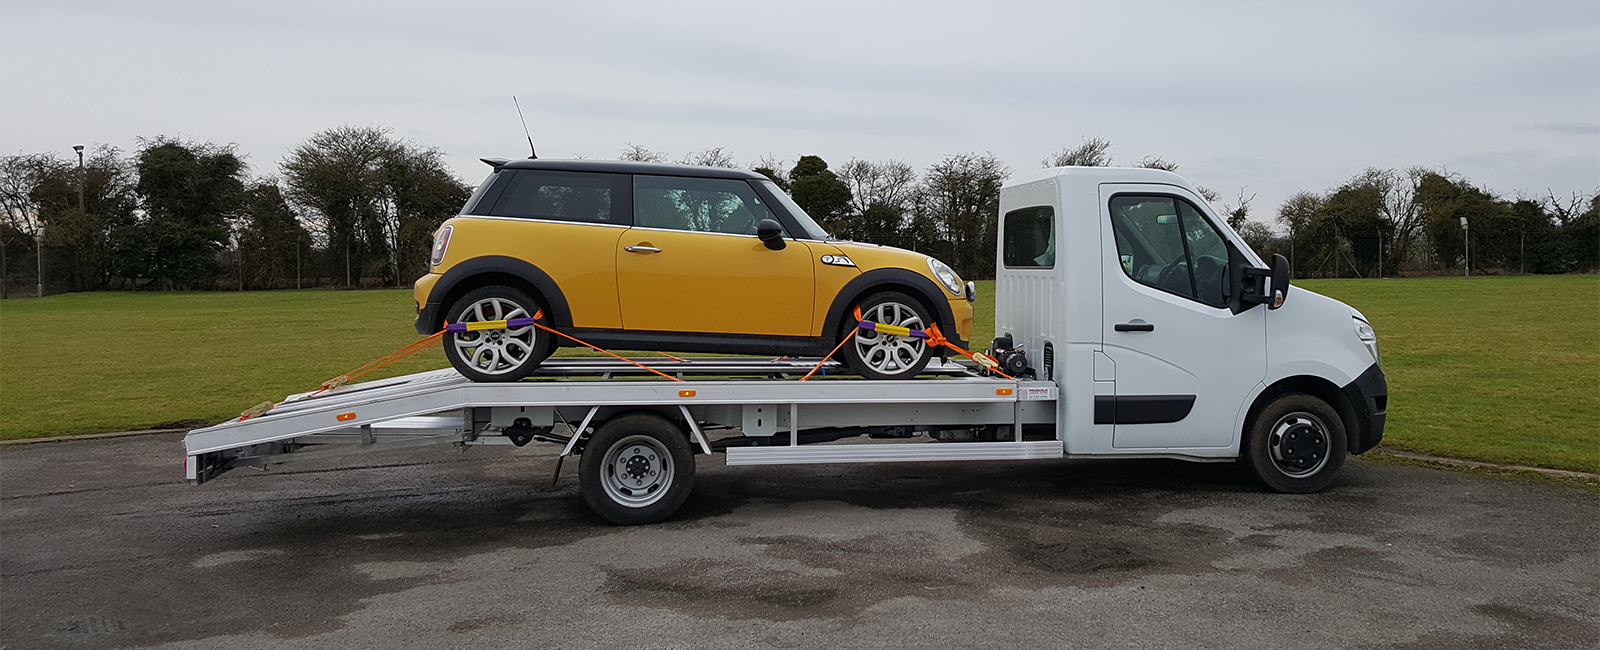 Mini loaded onto recovery truck